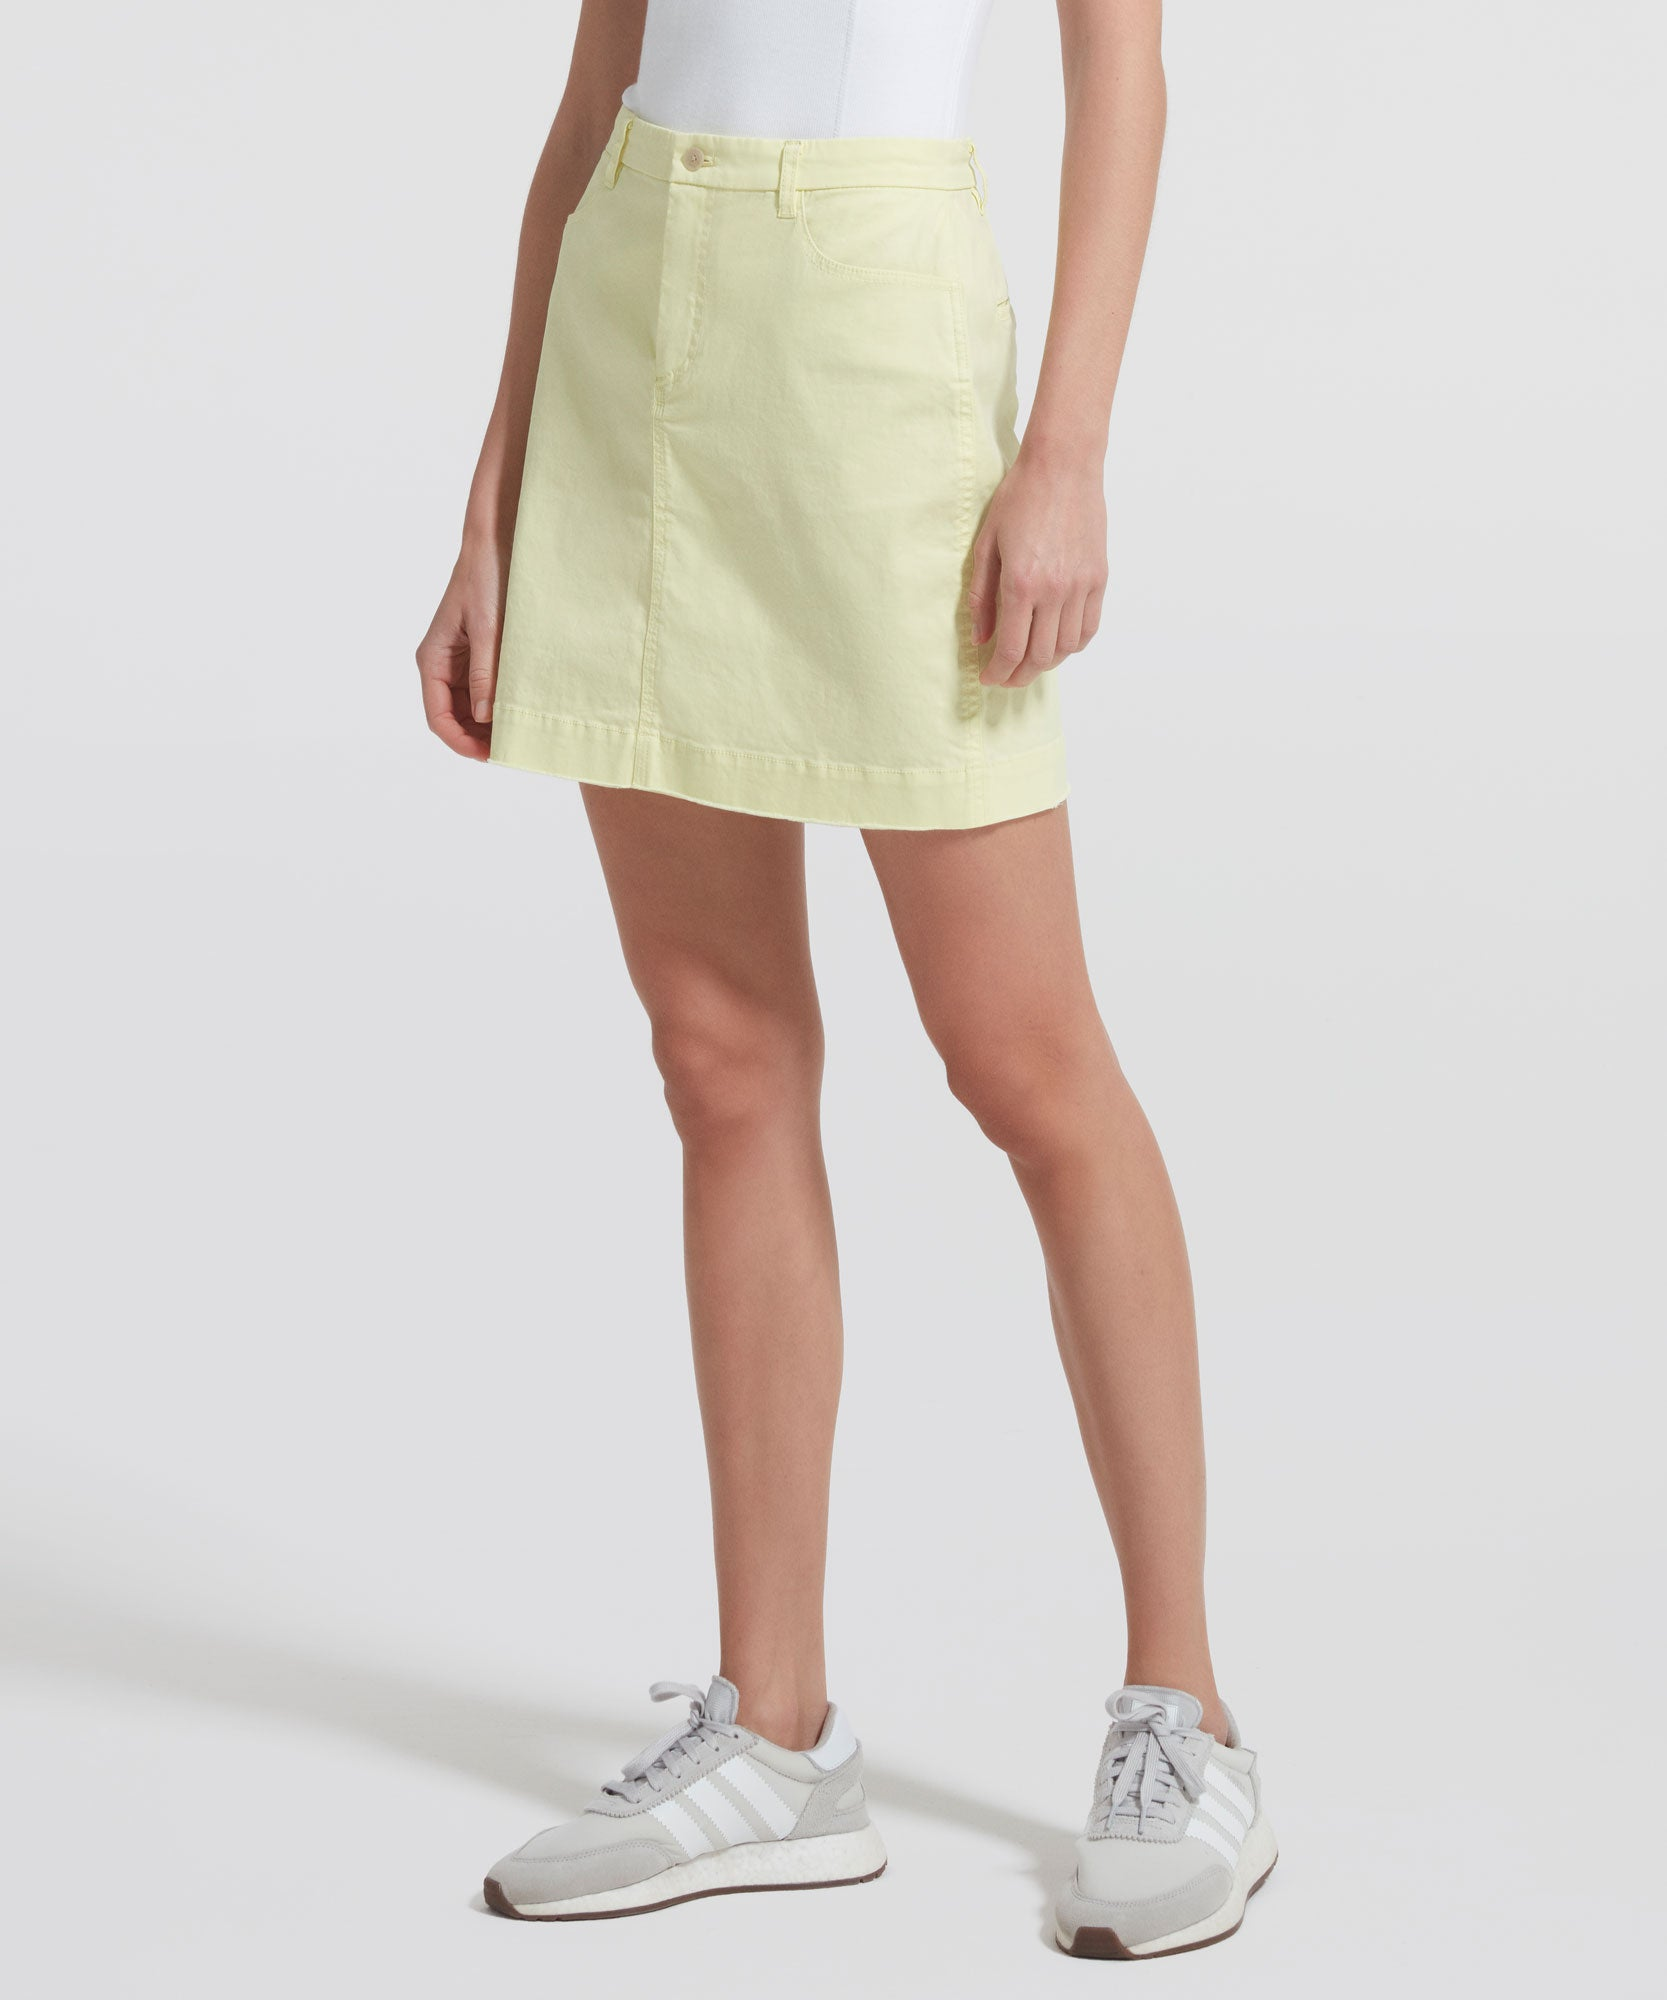 Lemon Stretch Cotton Mini Skirt - Women's Cotton Mini Skirt by ATM Anthony Thomas Melillo